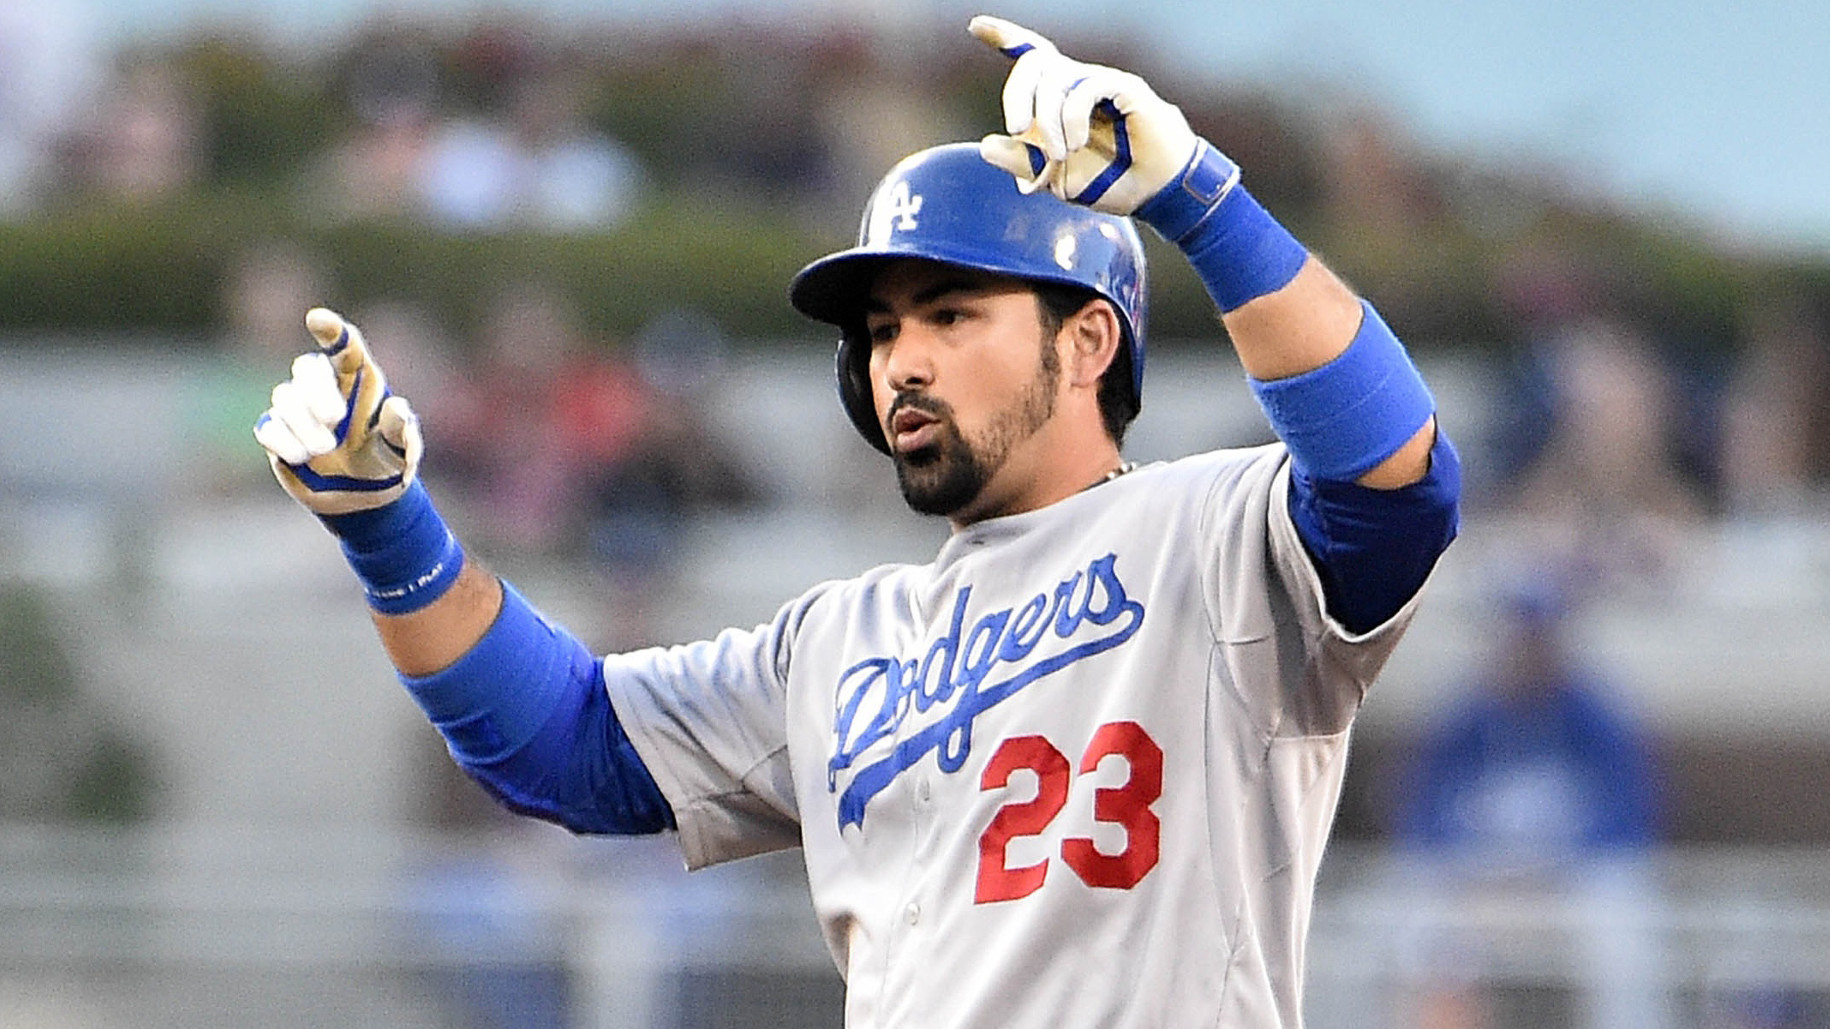 Dodgers' Adrian Gonzalez supports new pace-of-game rules - LA Times